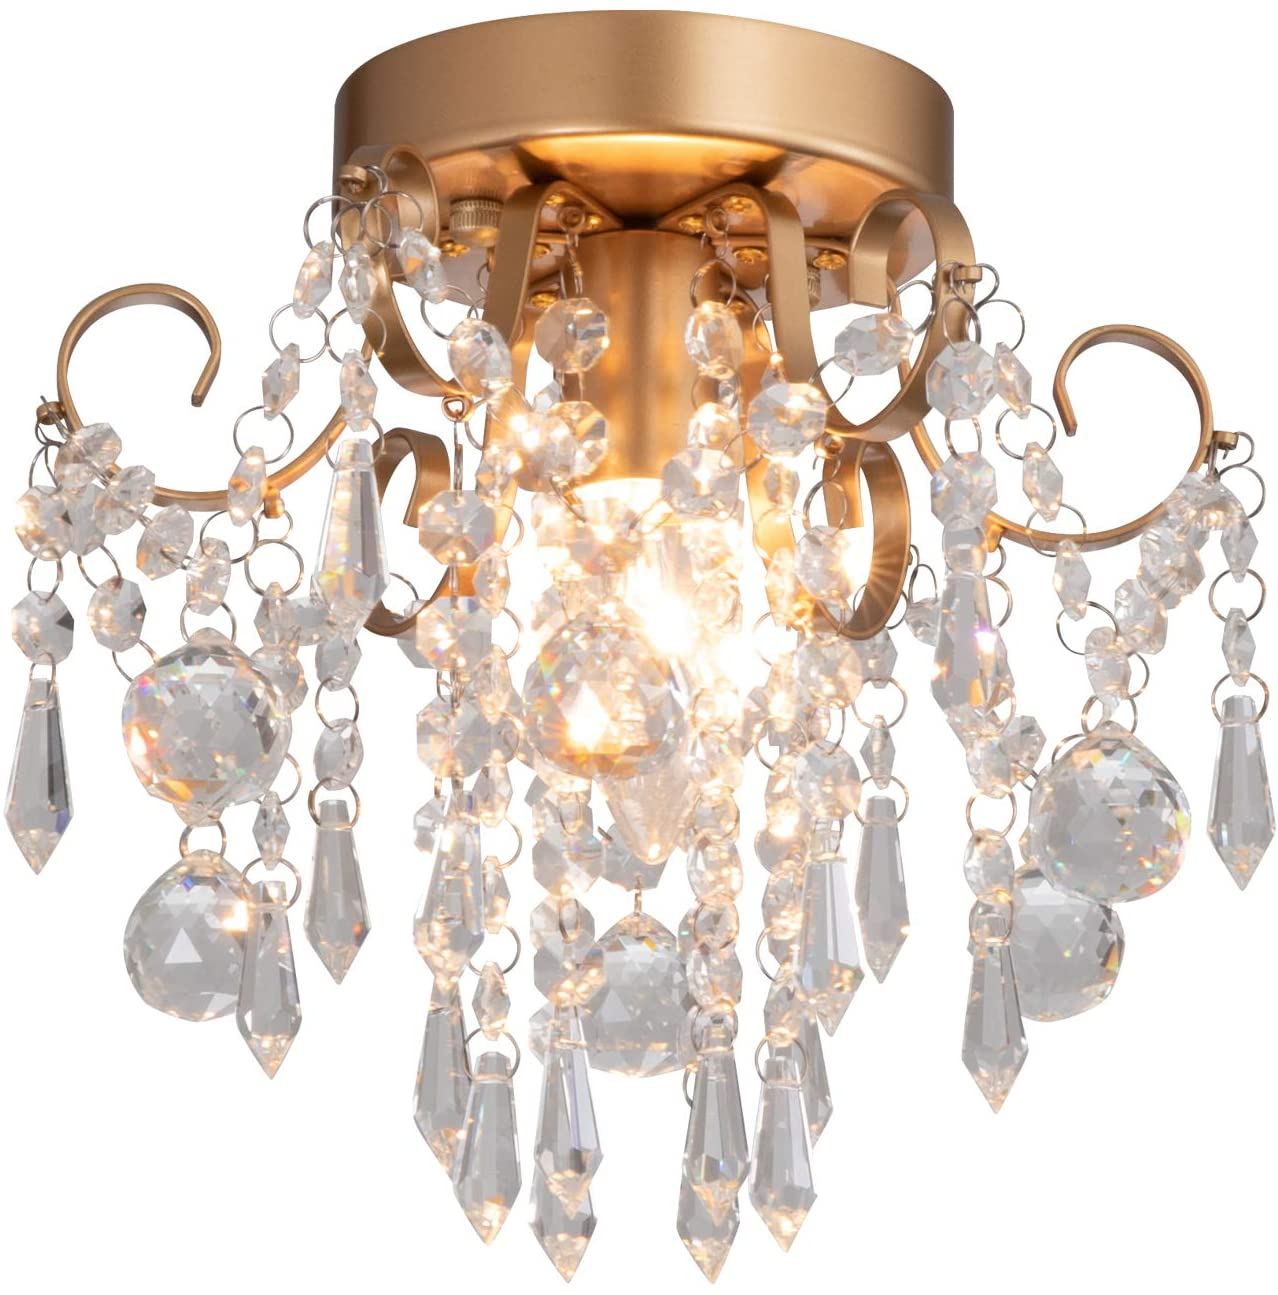 Mini Chandelier Crystal Ceiling Light for small living room